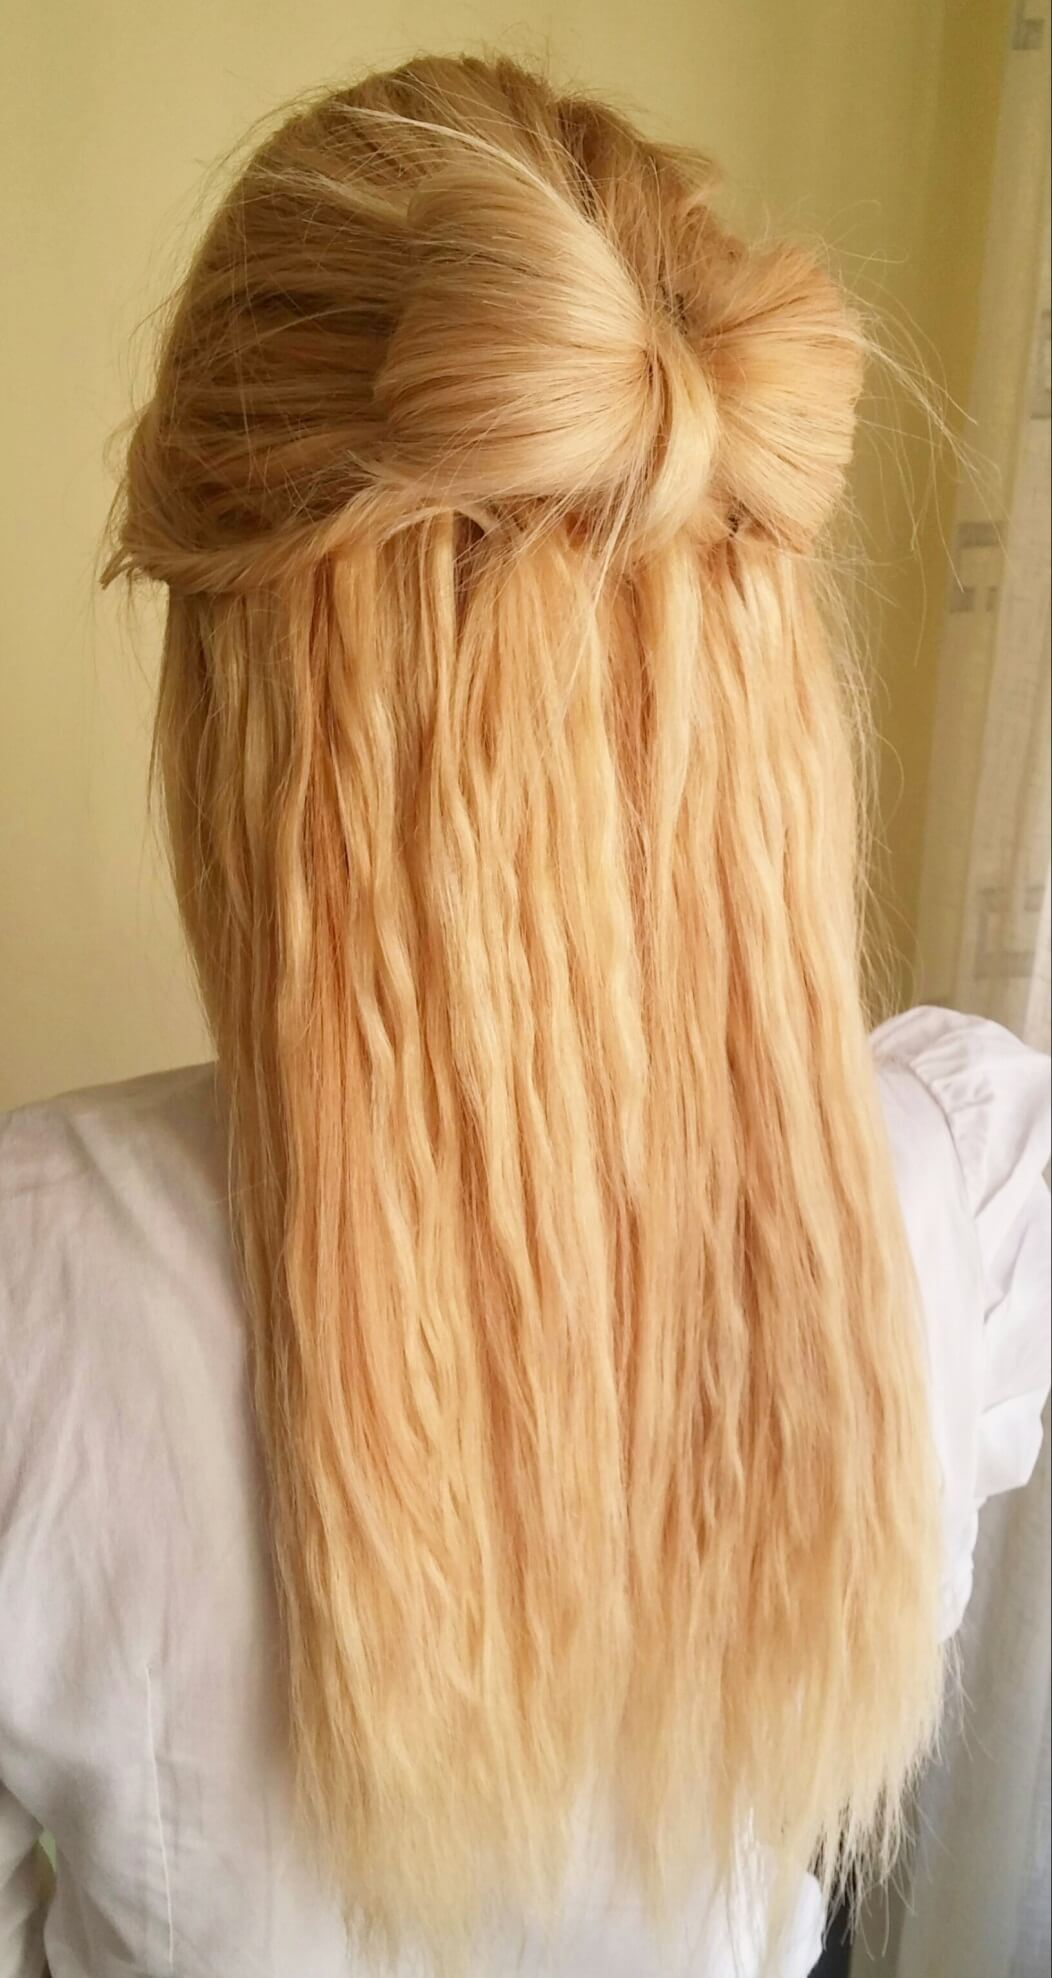 Pleasant Bow Half Up Do Hairstyle Using Cliphair Hair Extensions Hair Short Hairstyles For Black Women Fulllsitofus